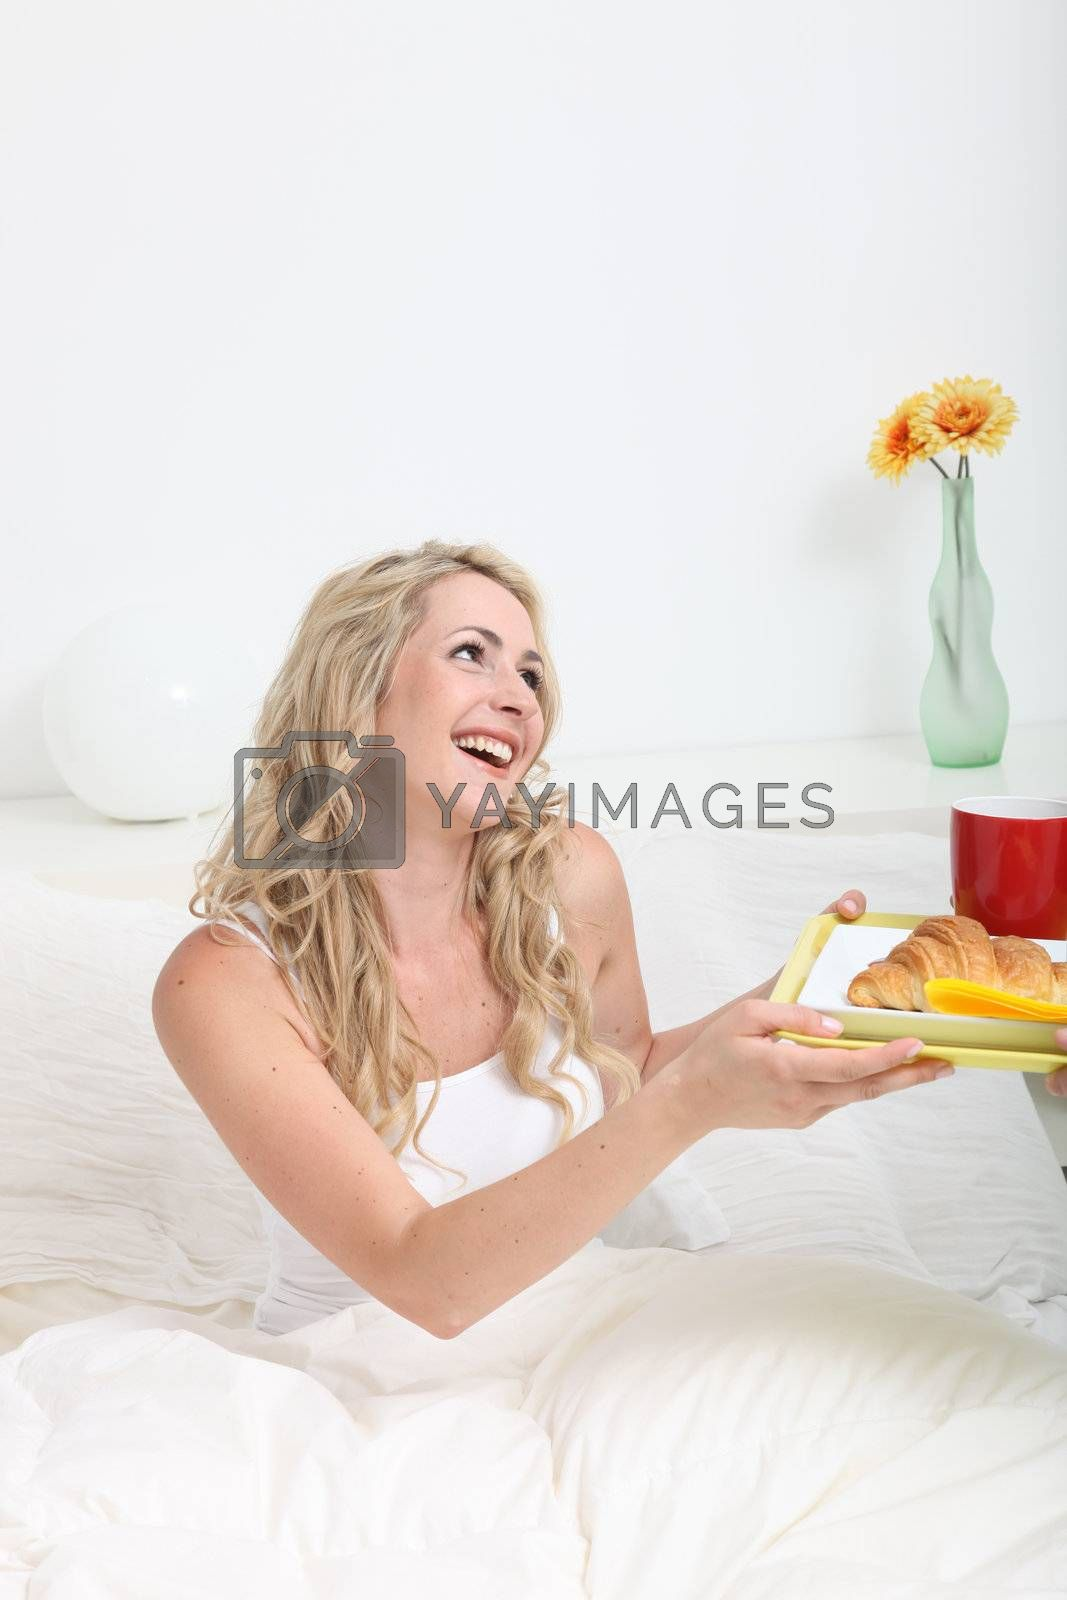 Woman smiling graciously as she receives breakfast in bed in celebration of a special event